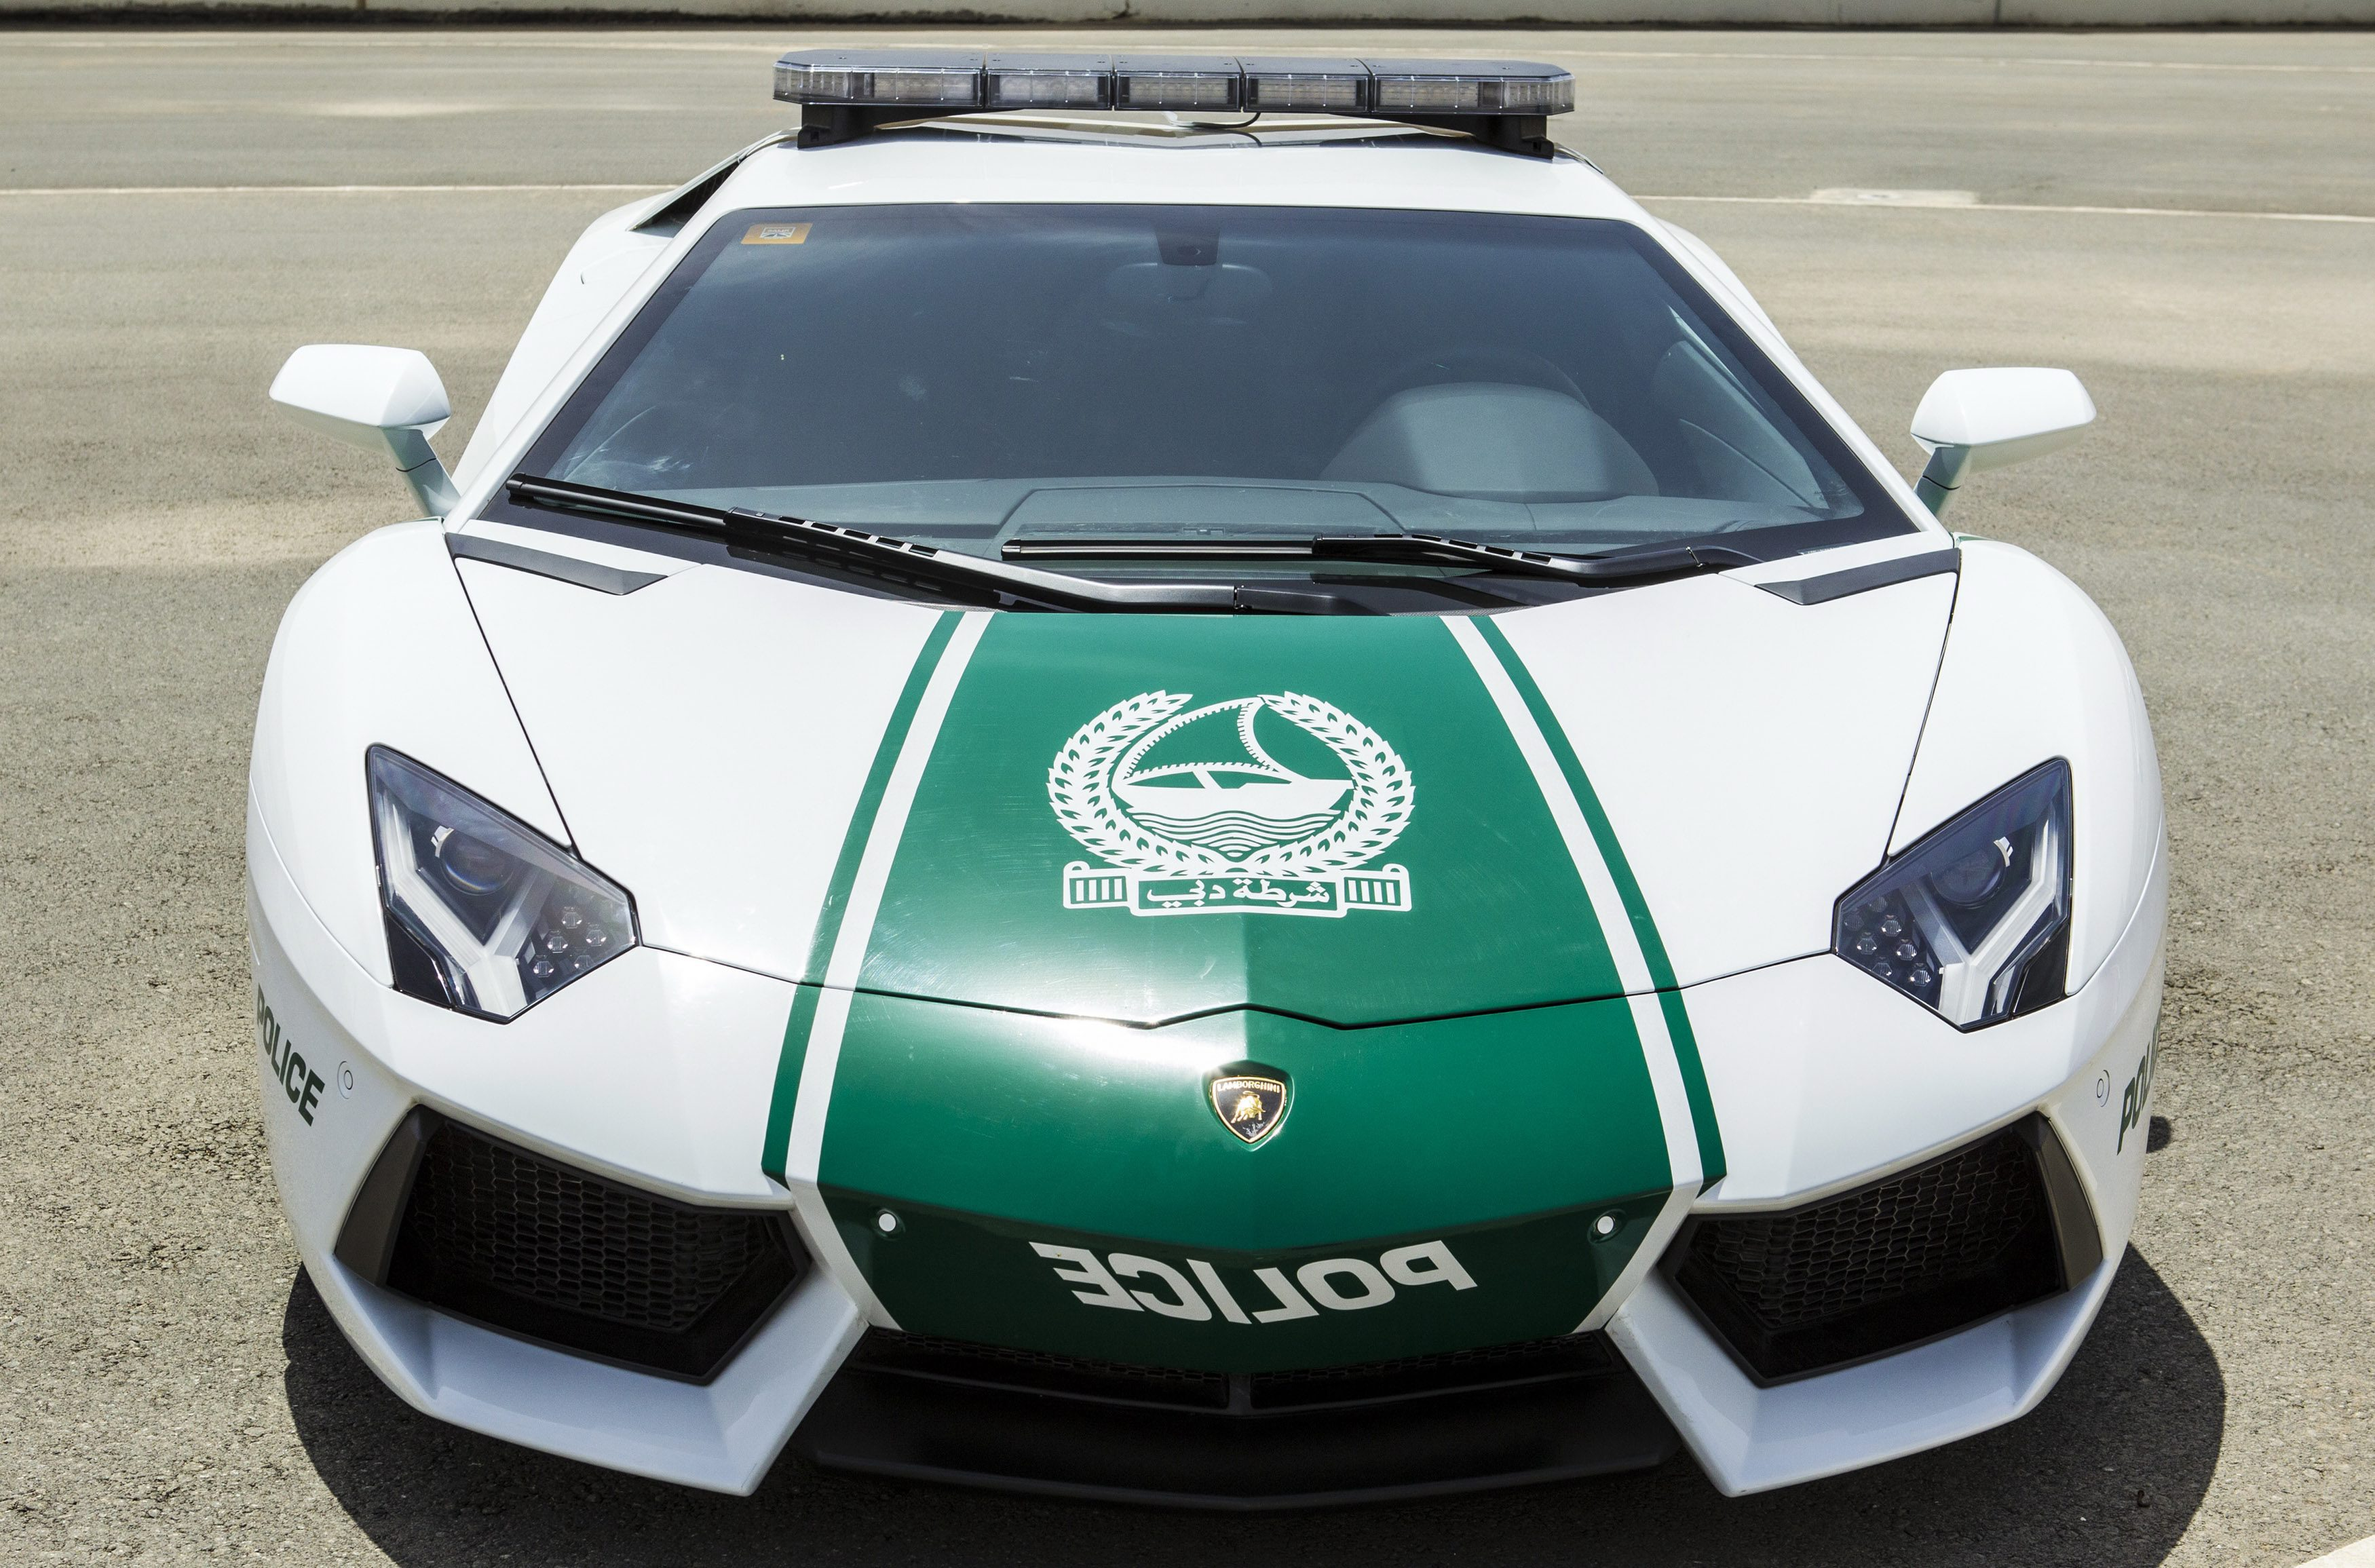 A handout picture released by Dubai Police Office shows the new Lamborghini Aventador which is used by Dubai Police Department, in Dubai, United Arab Emirates, 11 April 2013. Dubai Police announced on 11 April they added the Italian-made sports car to their police vehicles, apparently to boost their ability in high-speed chases. The 420,000 euros car can reach a speed of up to 349km/h.